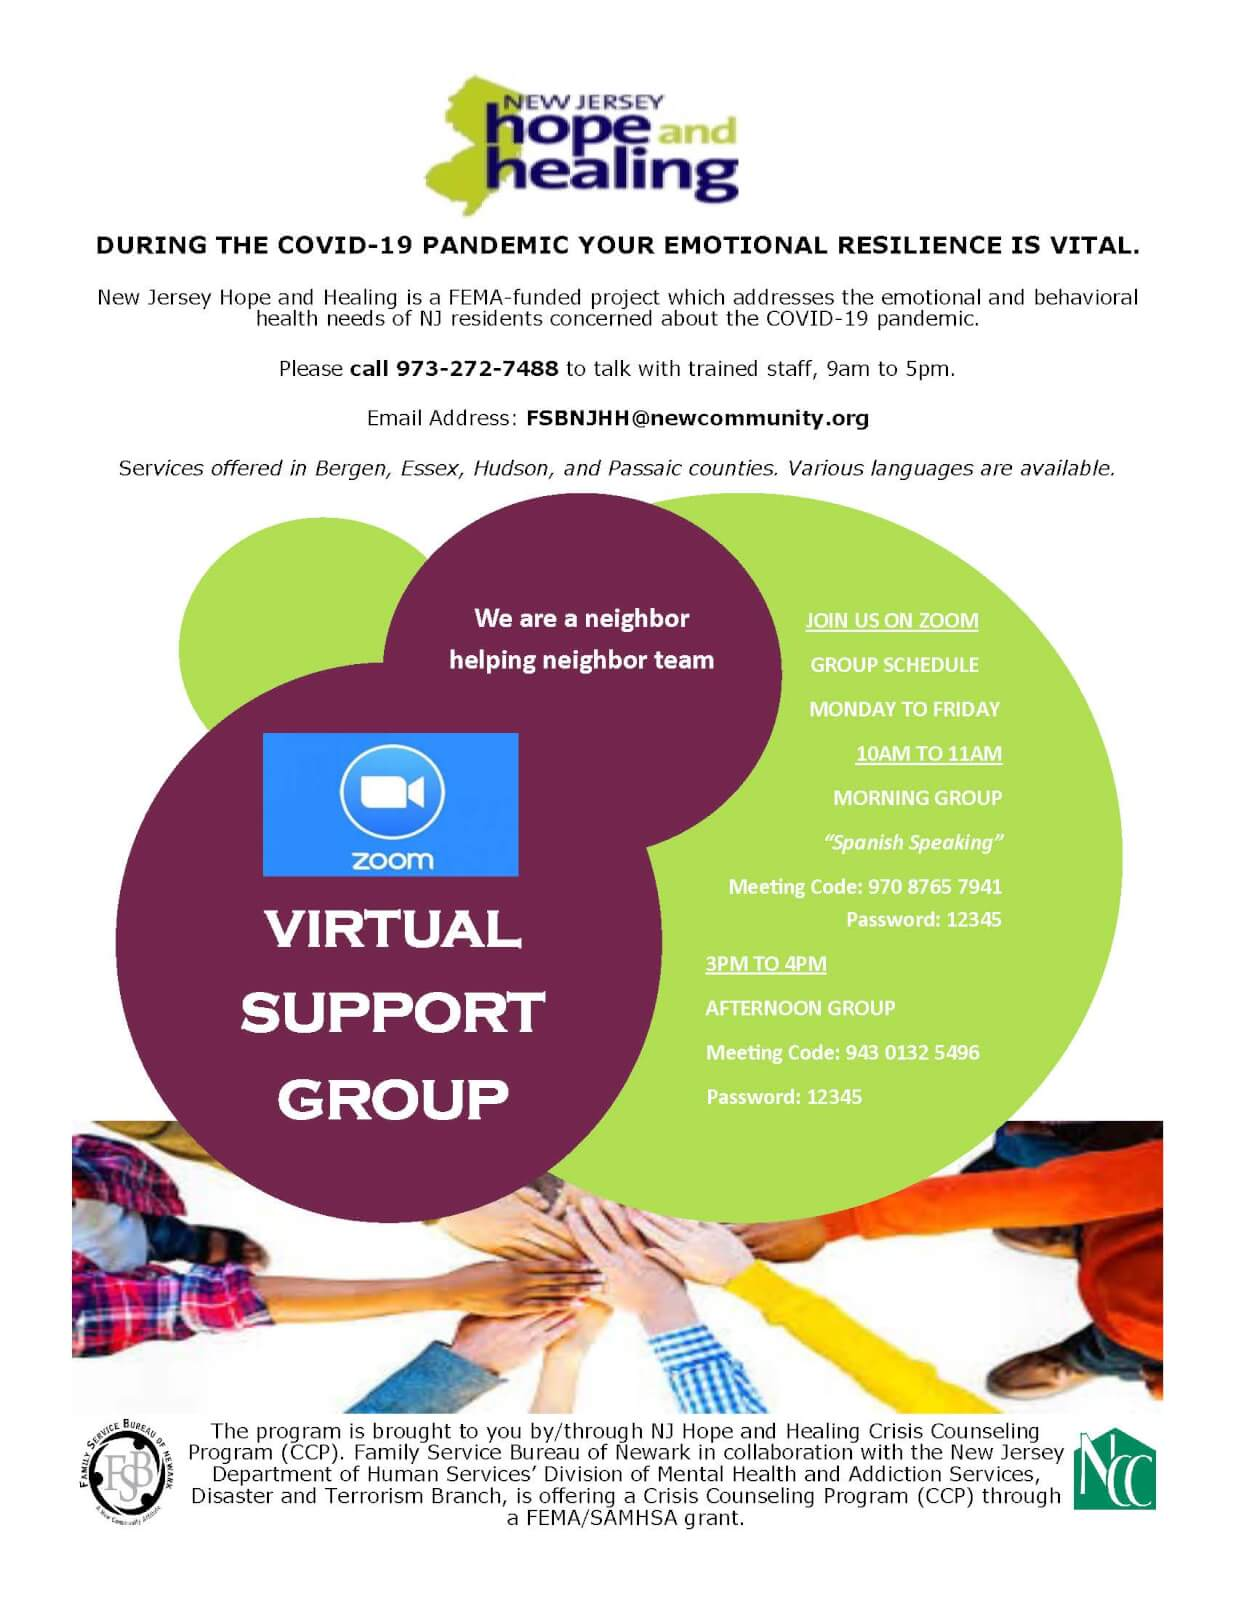 COVID-19 Virtual Support Group